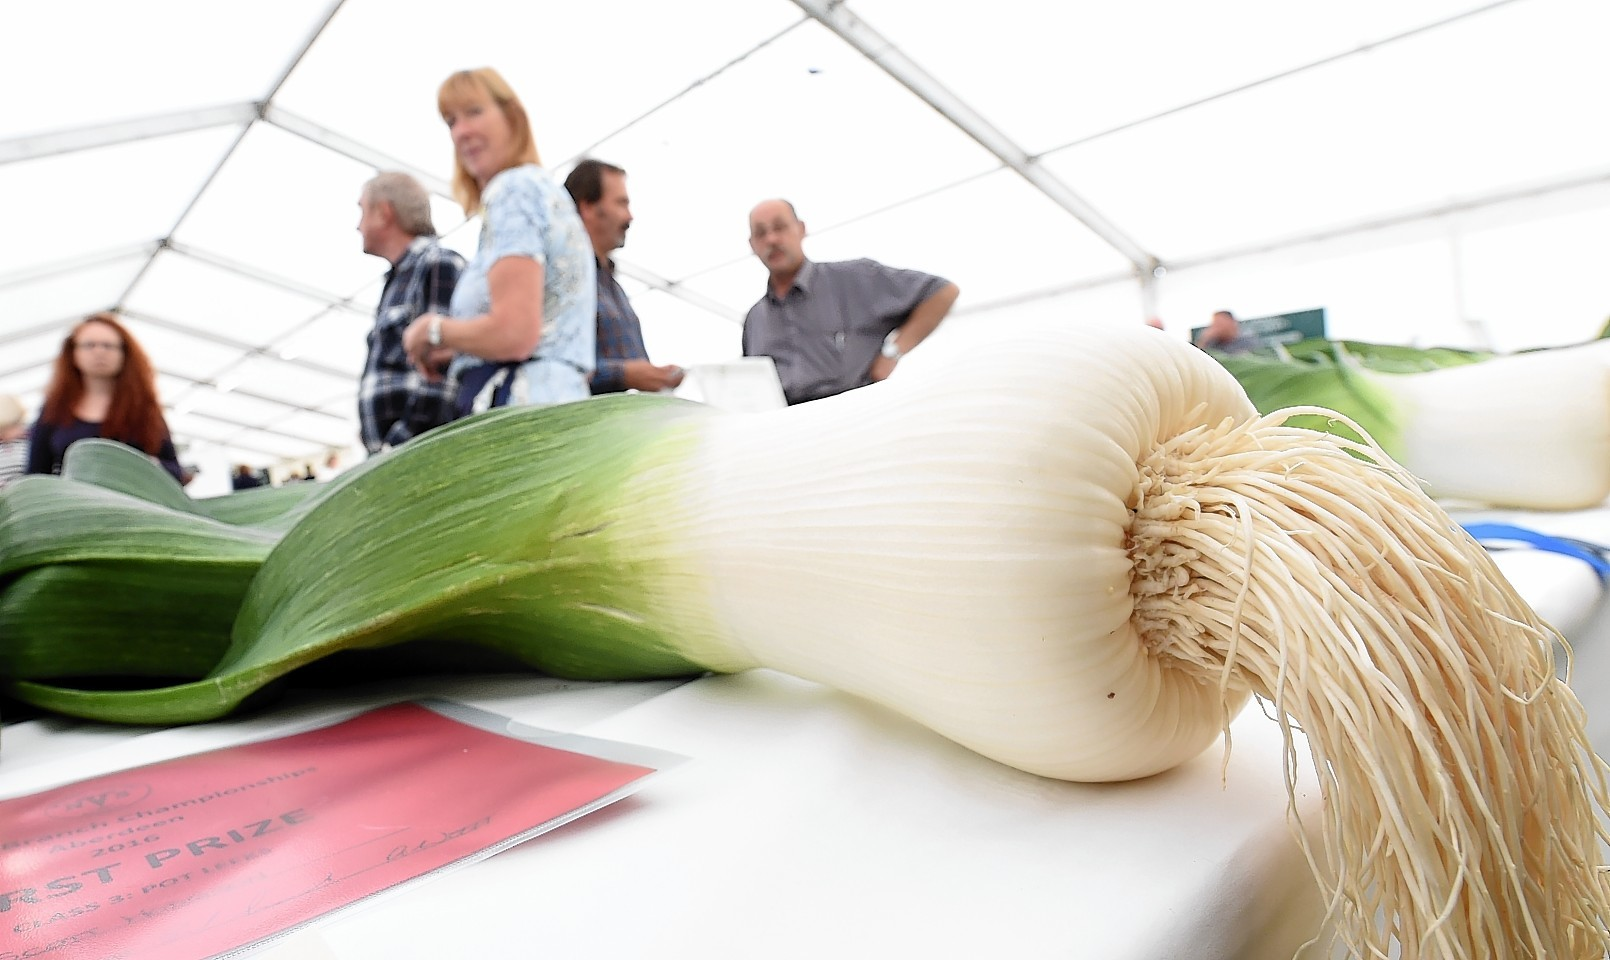 A north-east flower show is in danger